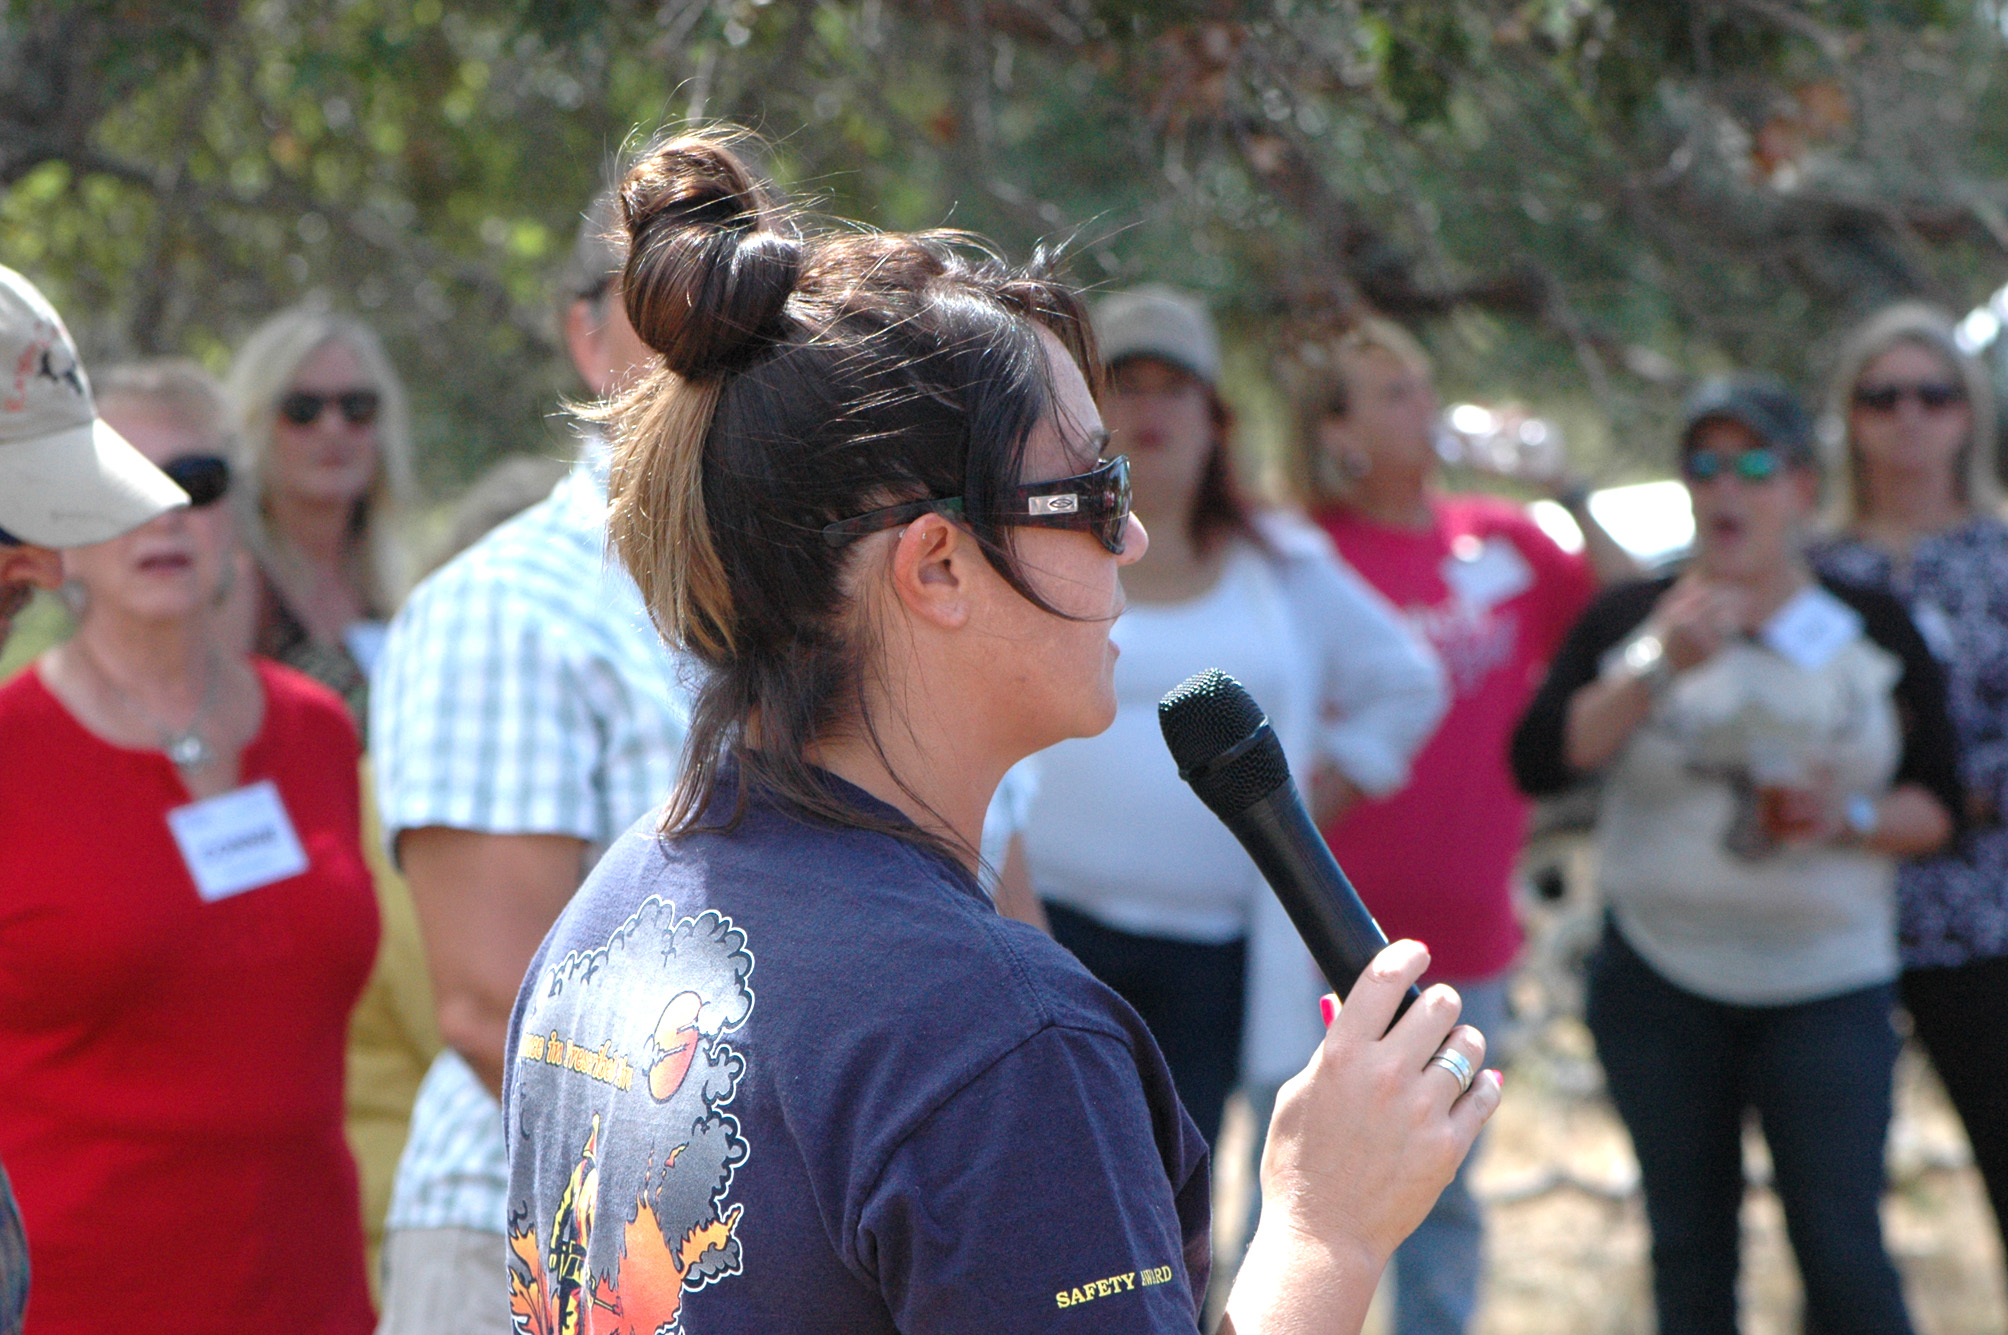 Women landowner, wildlife stewardship conference set Oct. 3-4